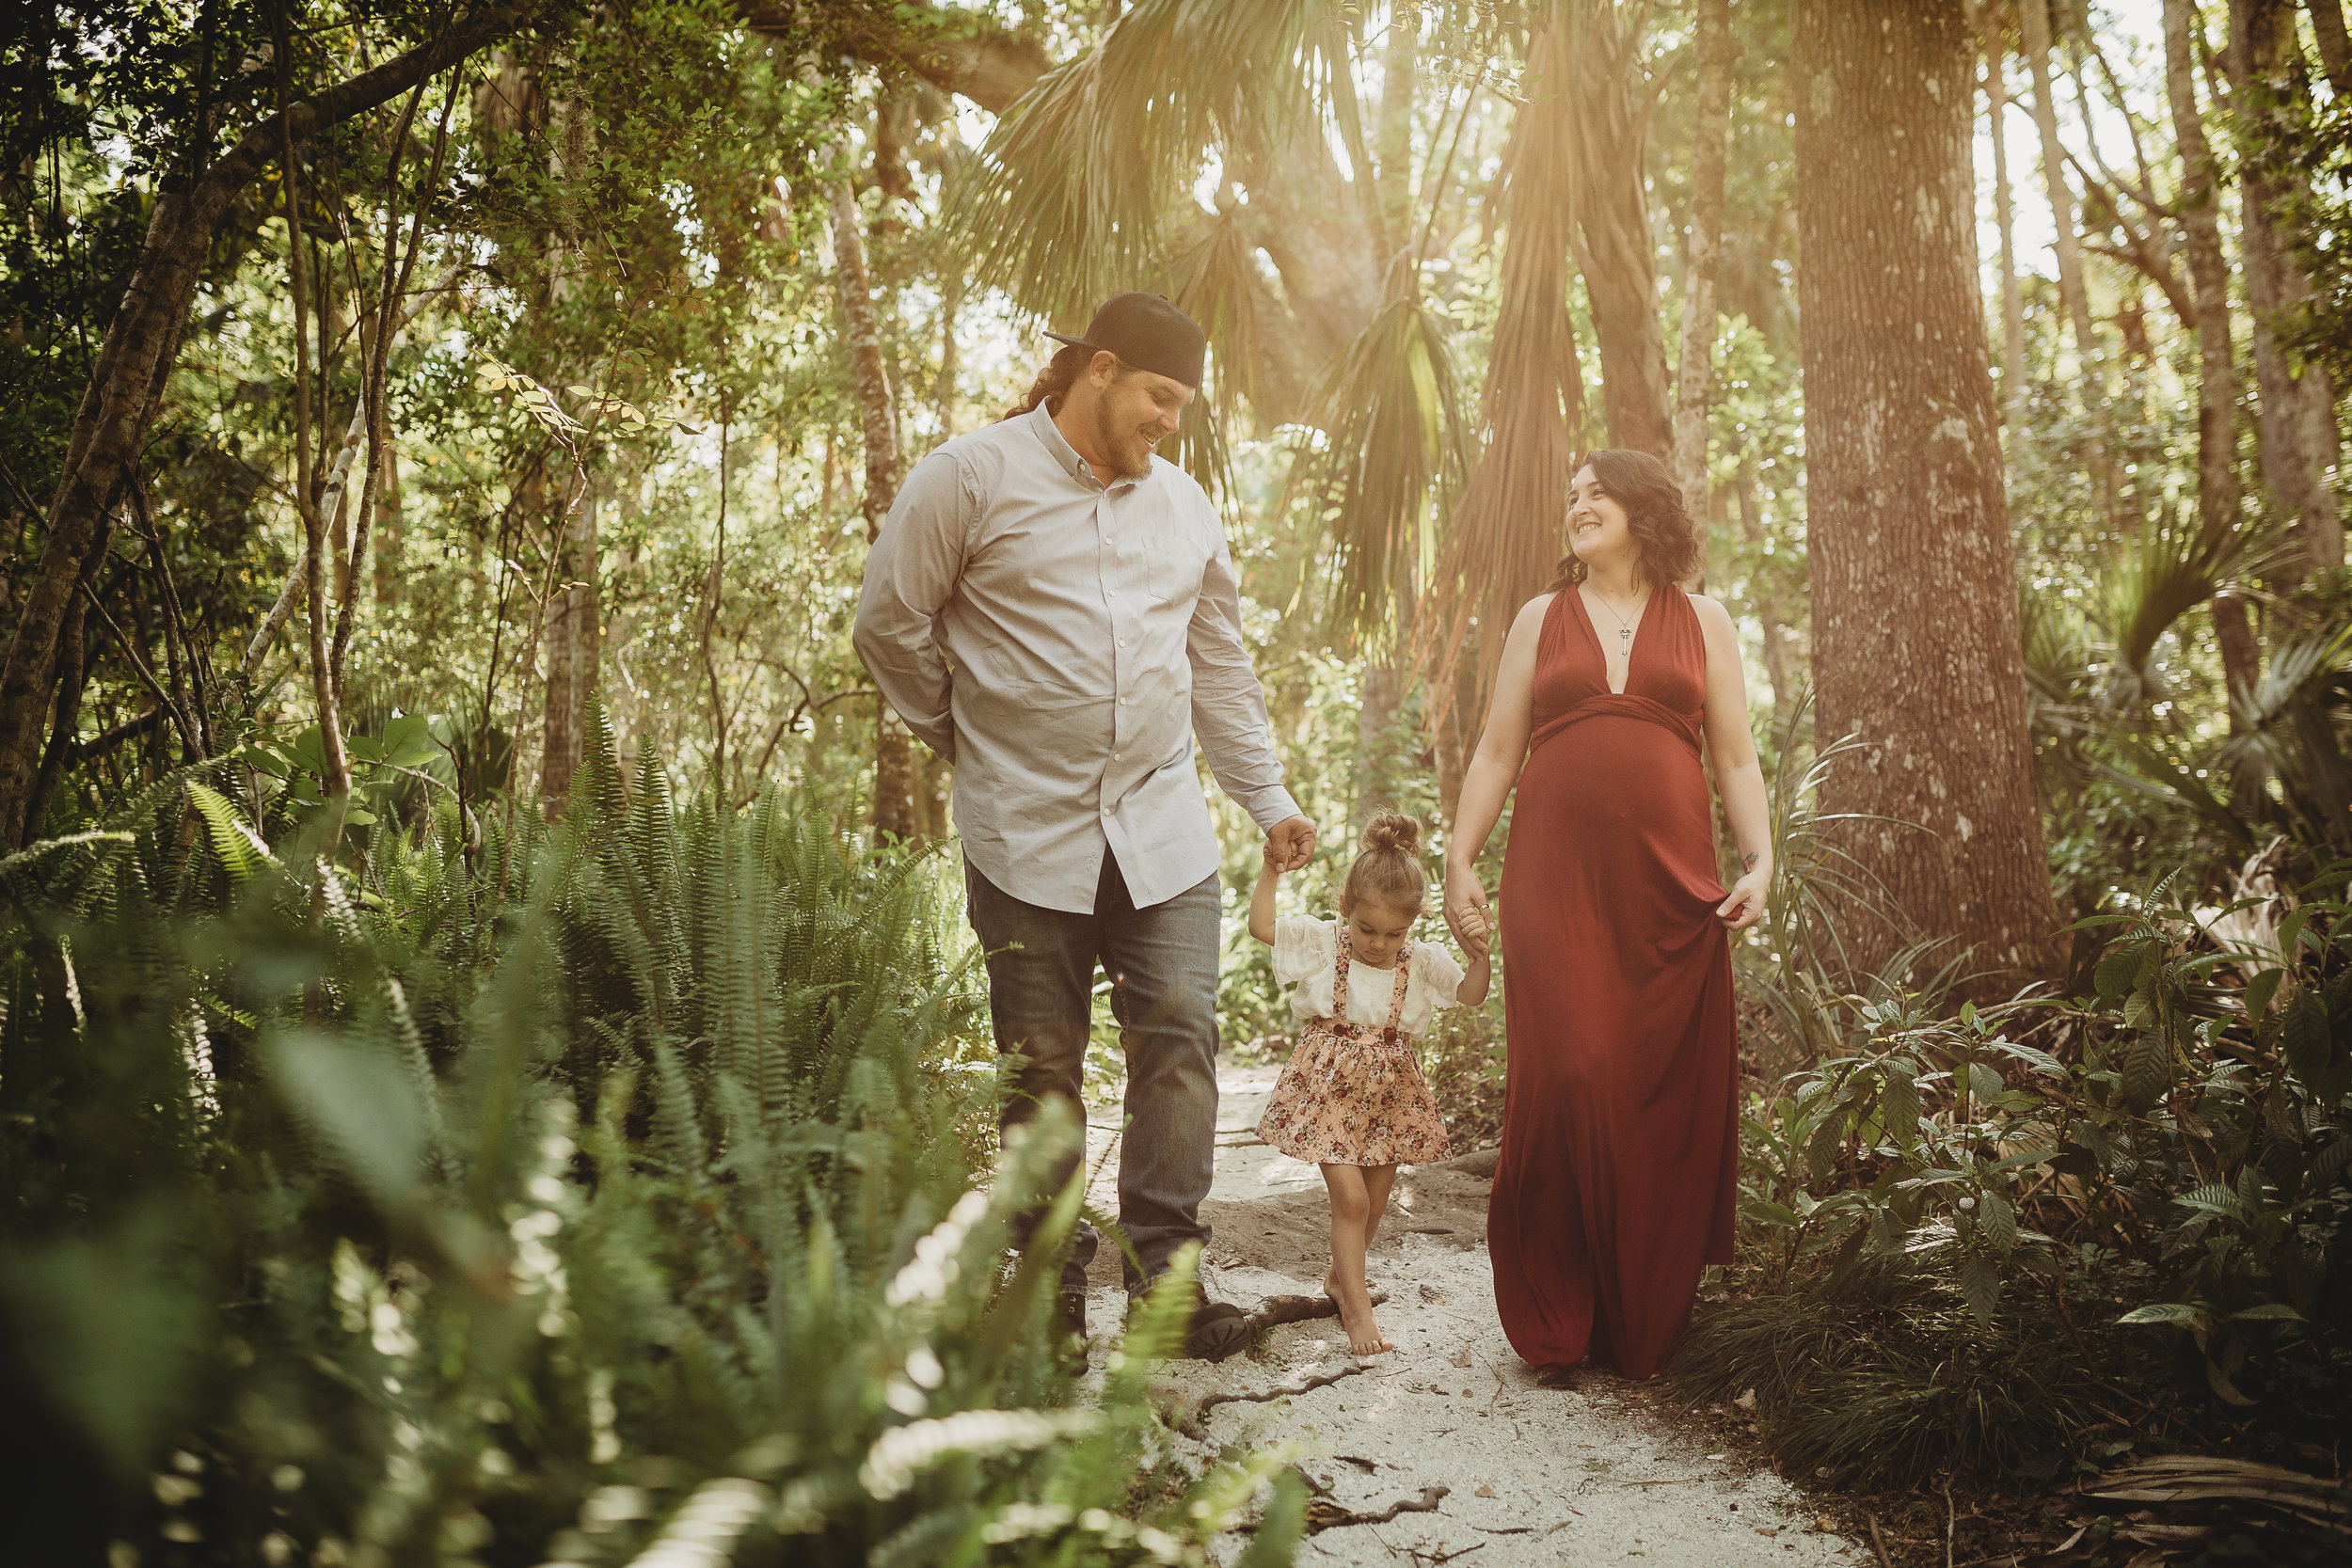 Daytona Beach Maternity photographer capturing emotive images at Sugar Mill Gardens in Port Orange